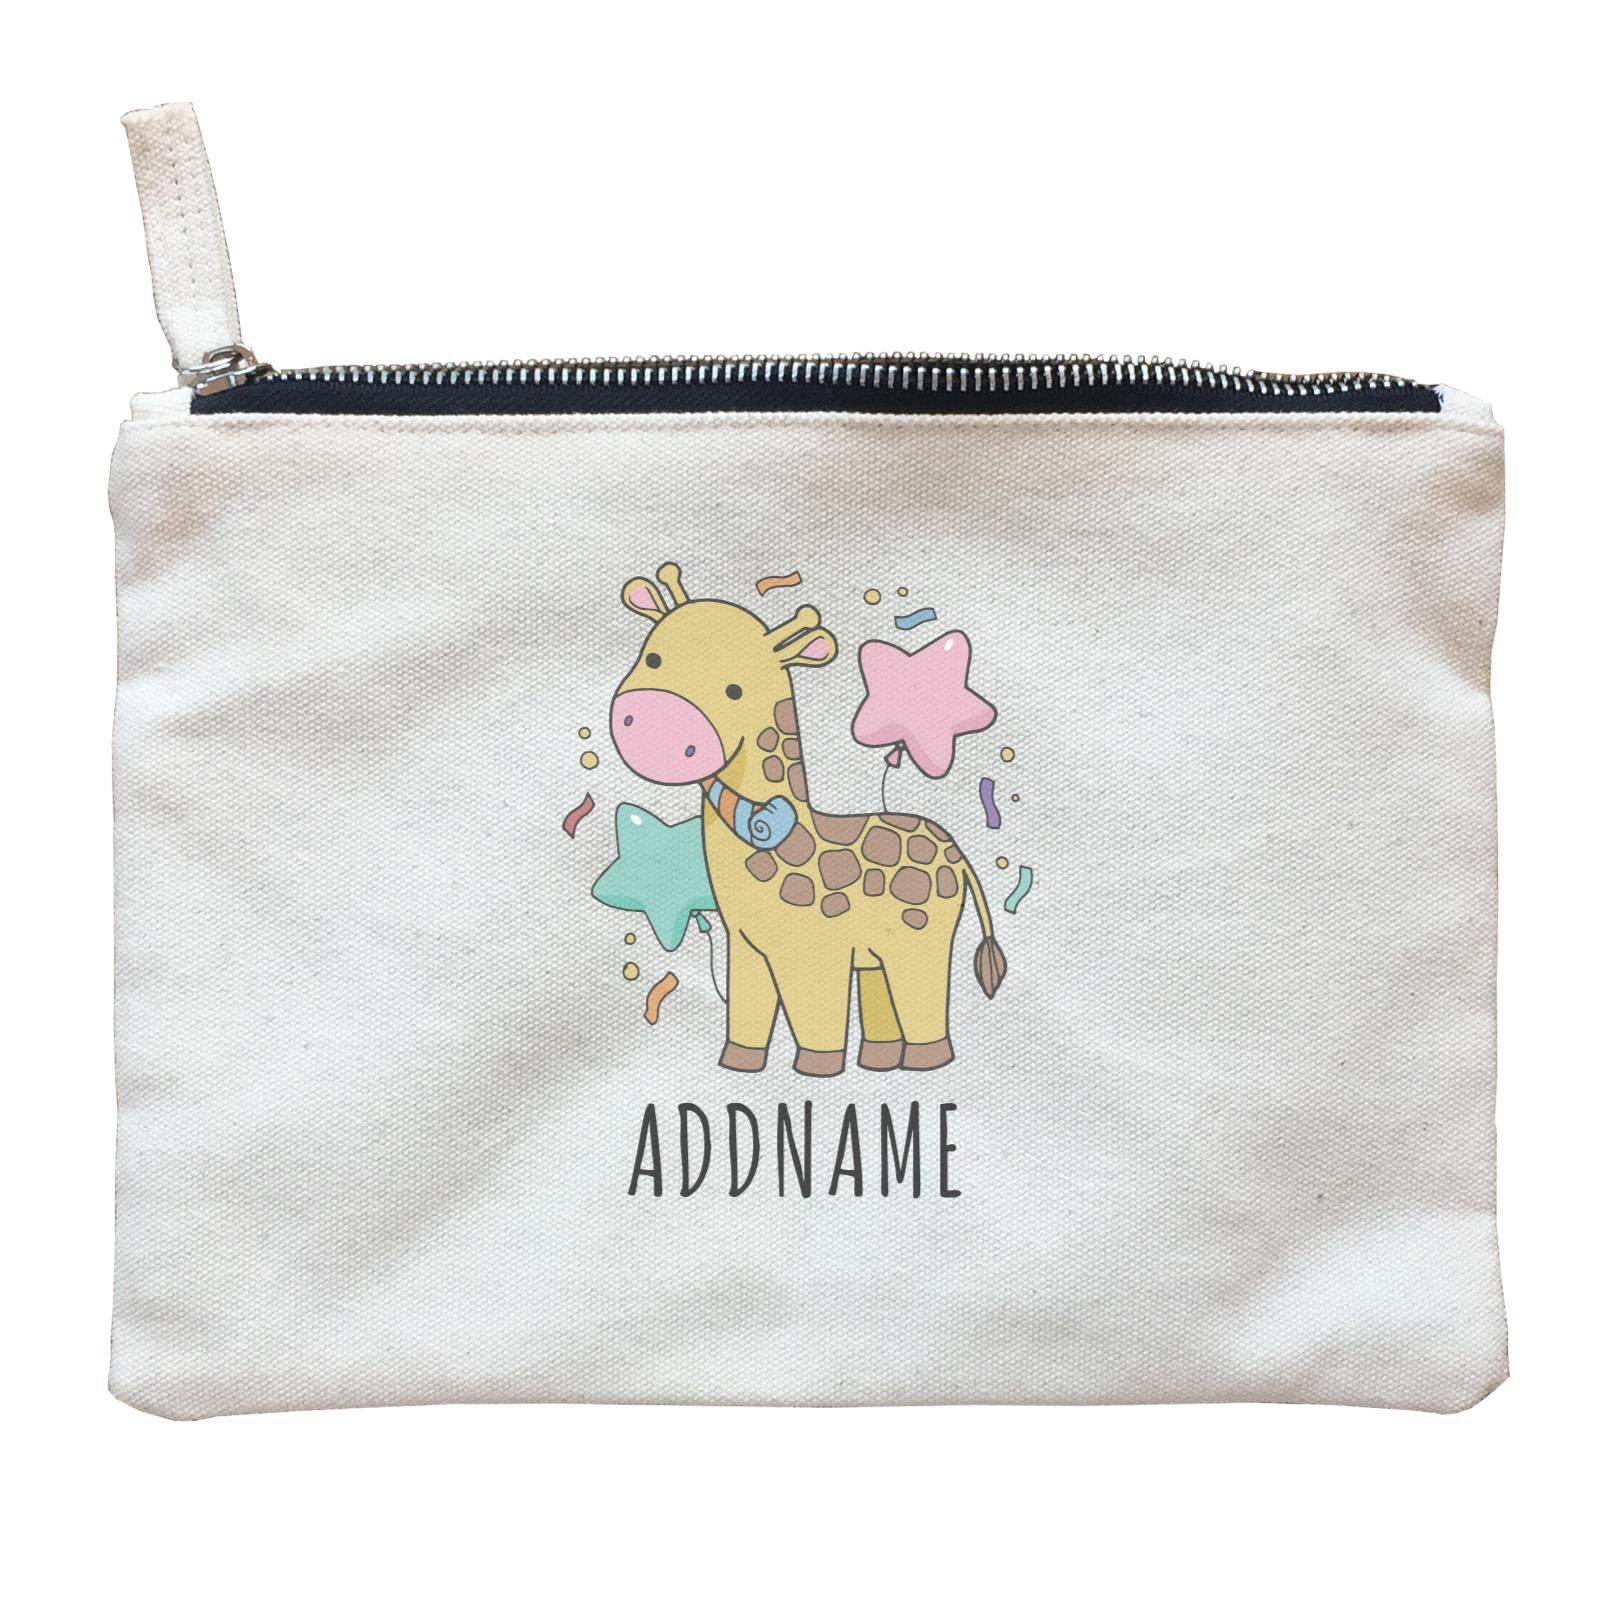 Birthday Sketch Animals Giraffe with Party Horn Addname Zipper Pouch